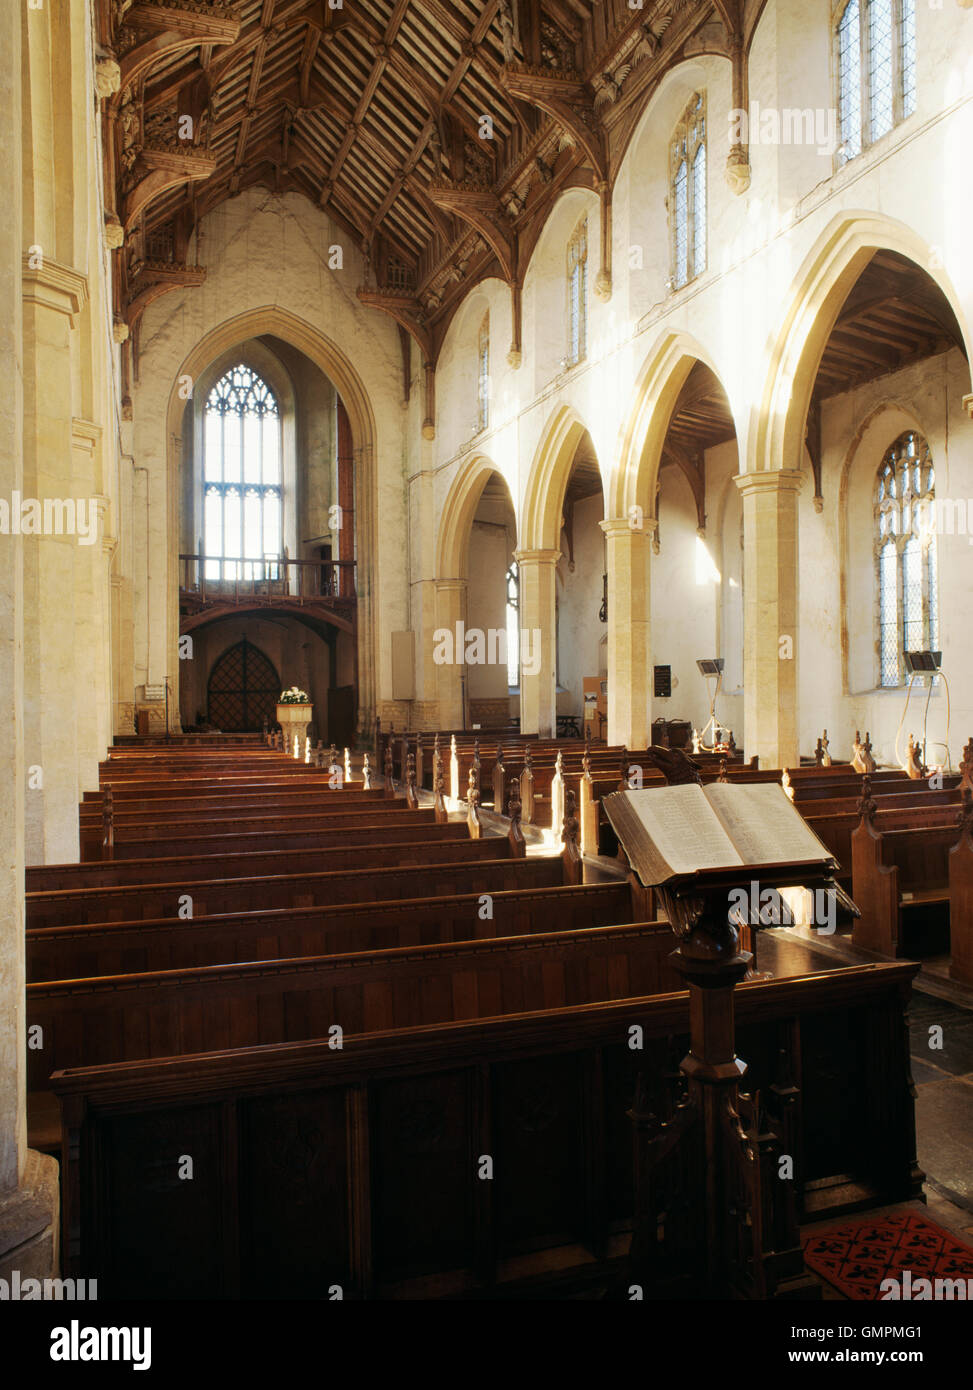 Nave & N aisle of St Agnus' Church, Cawston, looking WNW towards plough gallery in the tower. C15th hammer - Stock Image